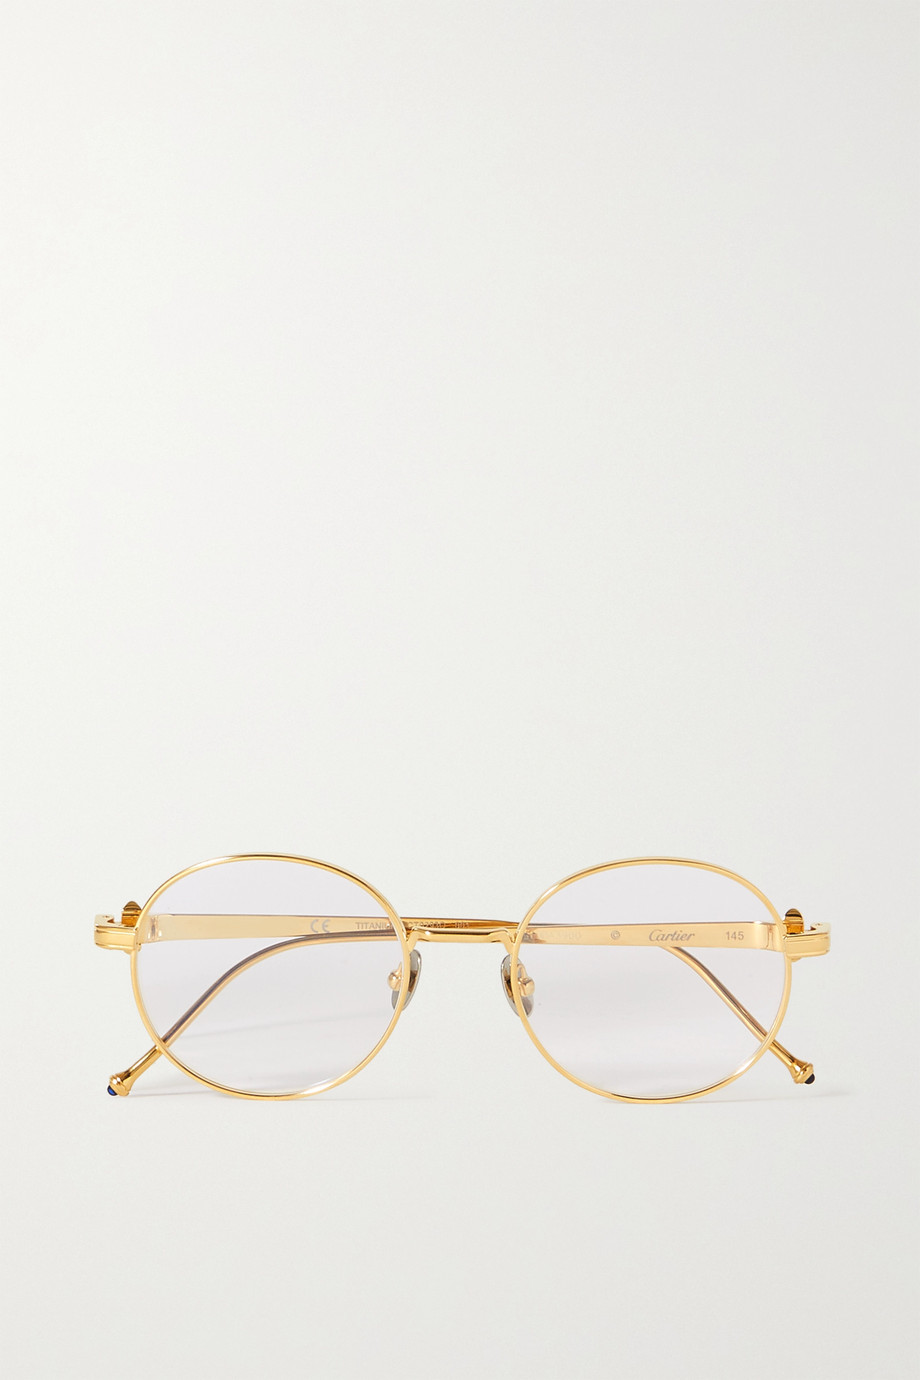 CARTIER EYEWEAR Pasha de Cartier round-frame gold-tone optical glasses